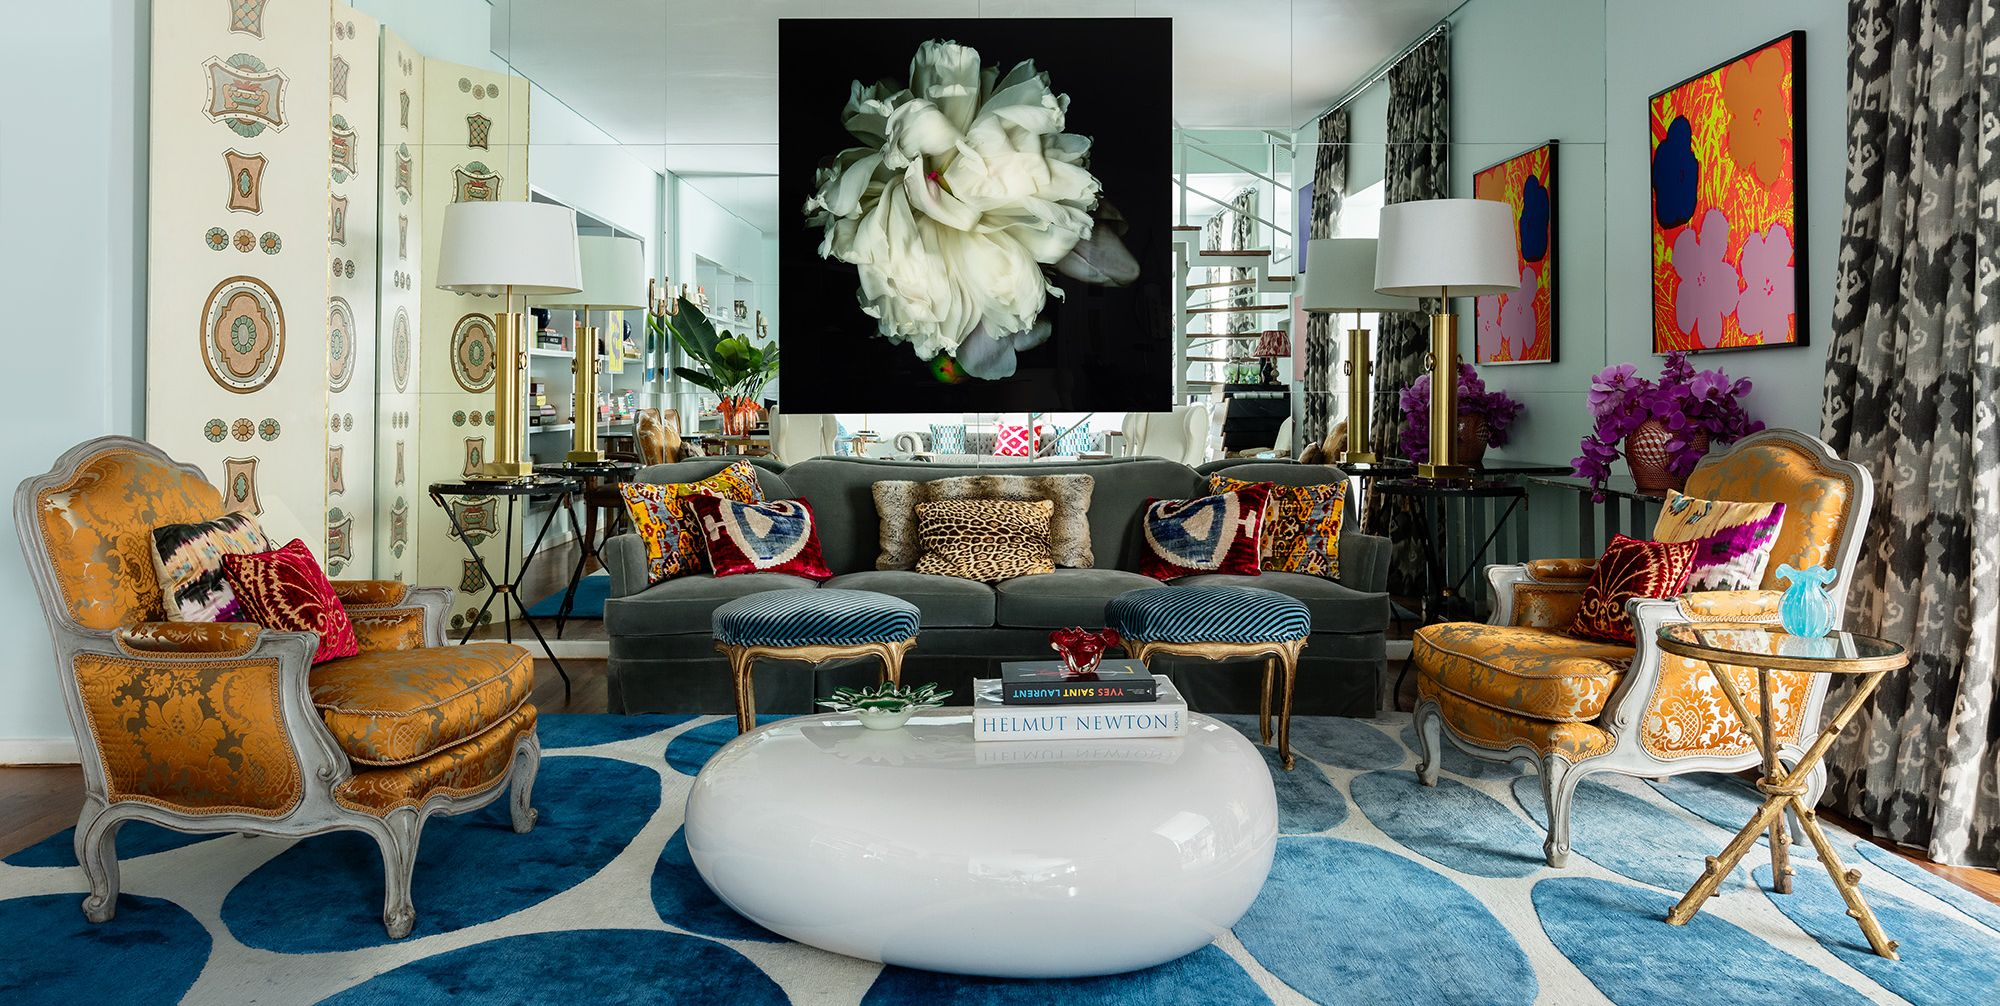 The 33 Best Living Room Rugs To Elevate Your Lounge Space From Casual To Chic